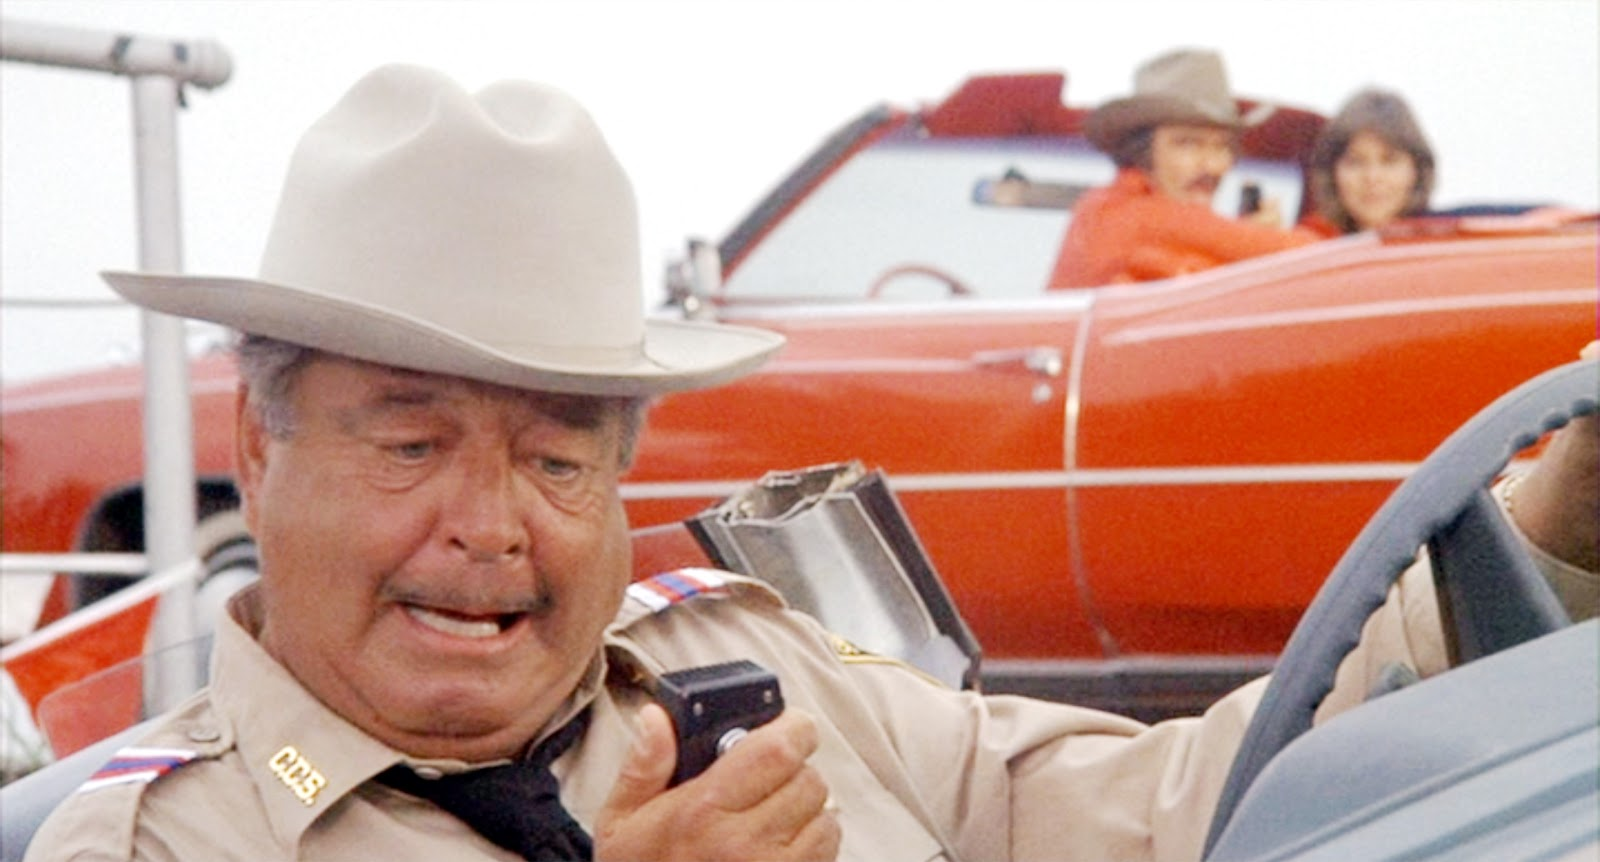 Moustache Wallpaper Hd Jackie Gleason Smokey And The Bandit Quotes Quotesgram